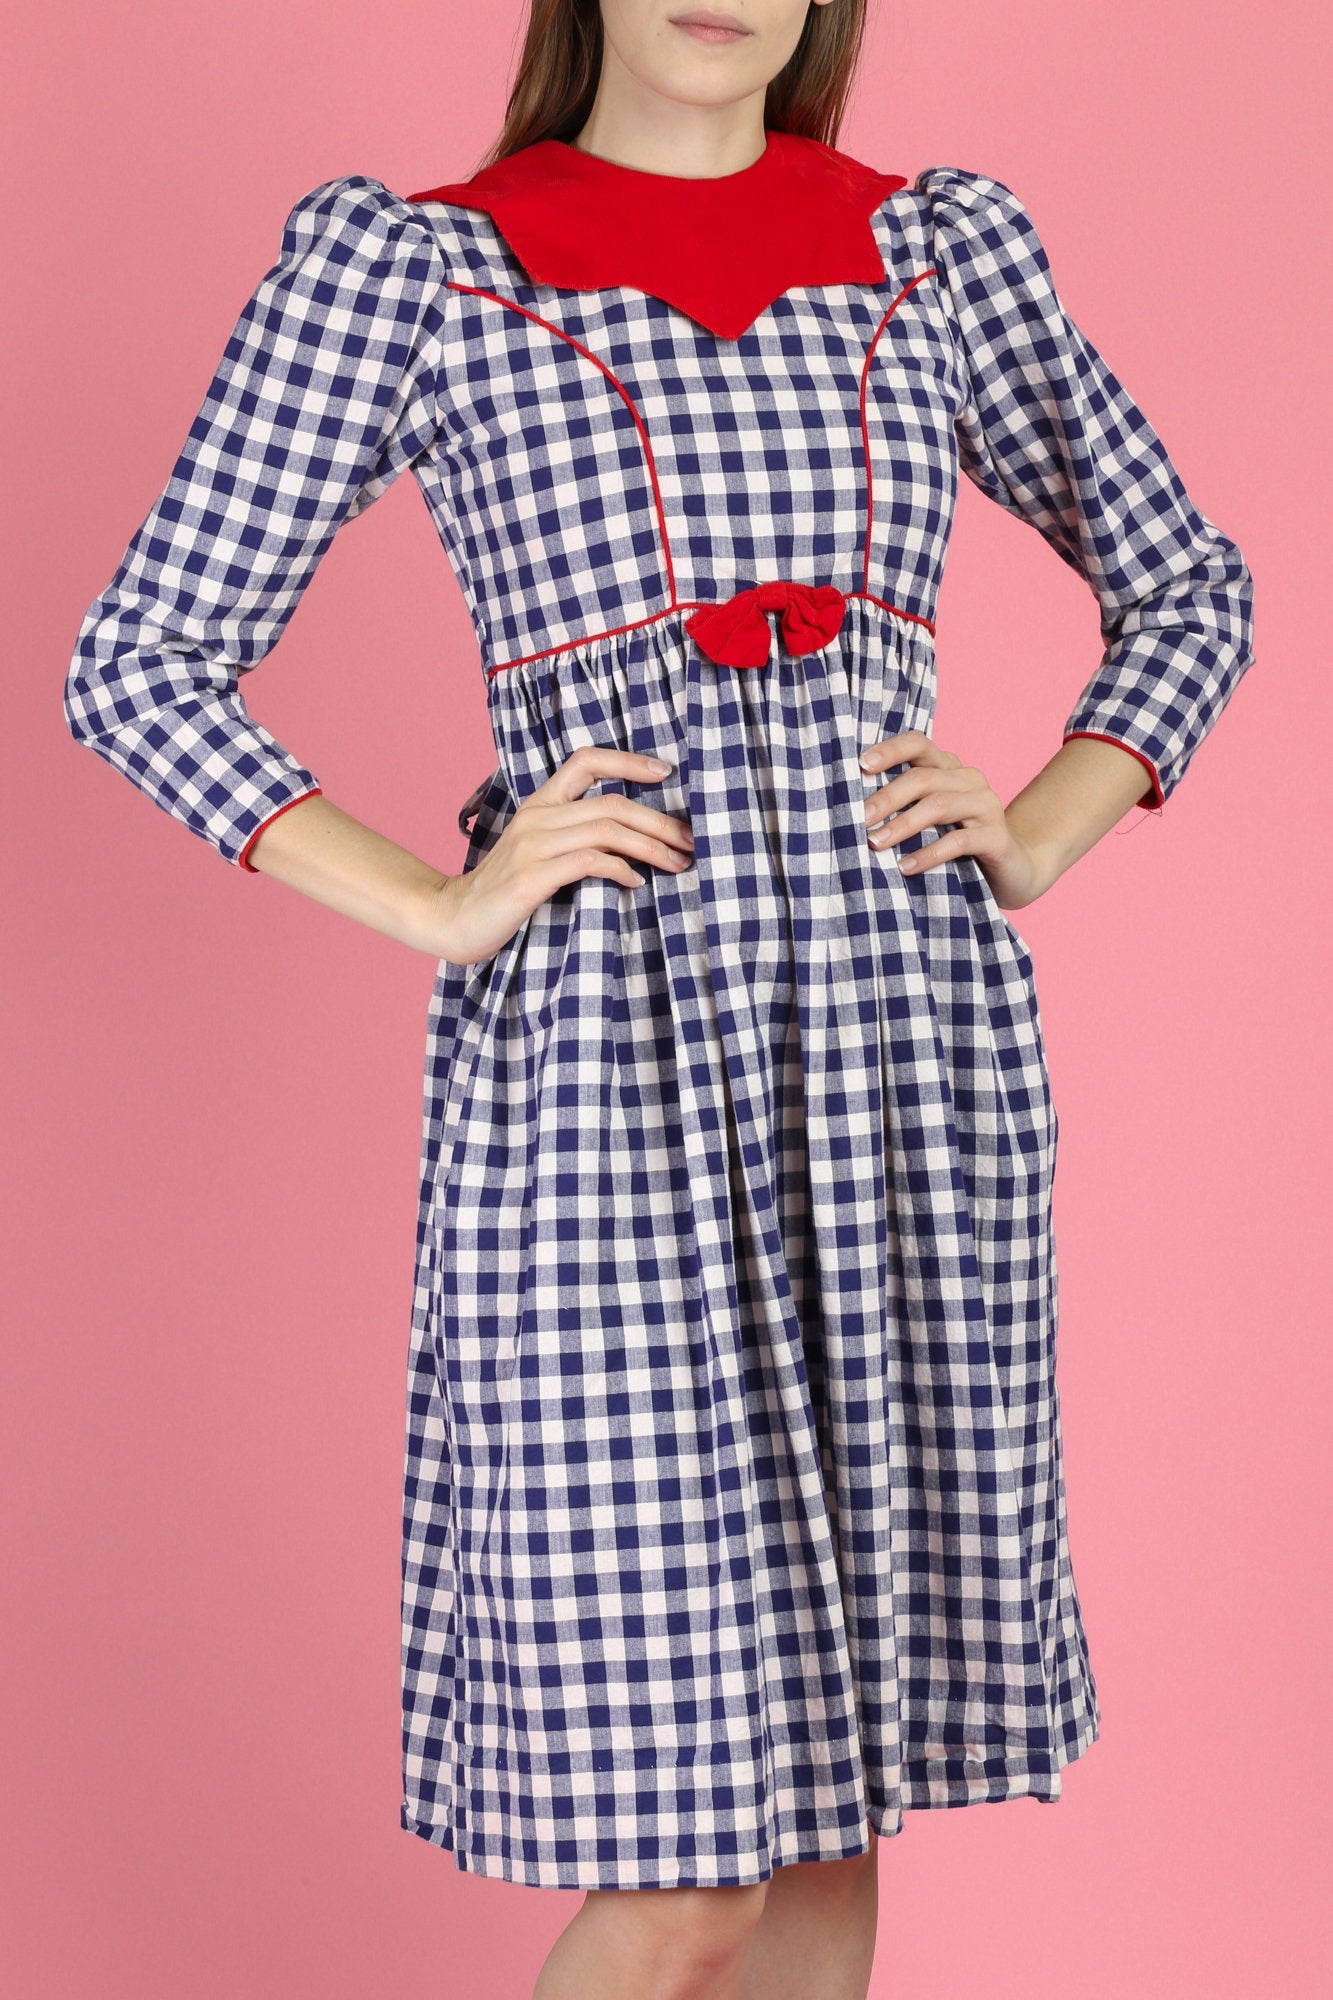 80s Red White & Blue Gingham Dress - Petite XS